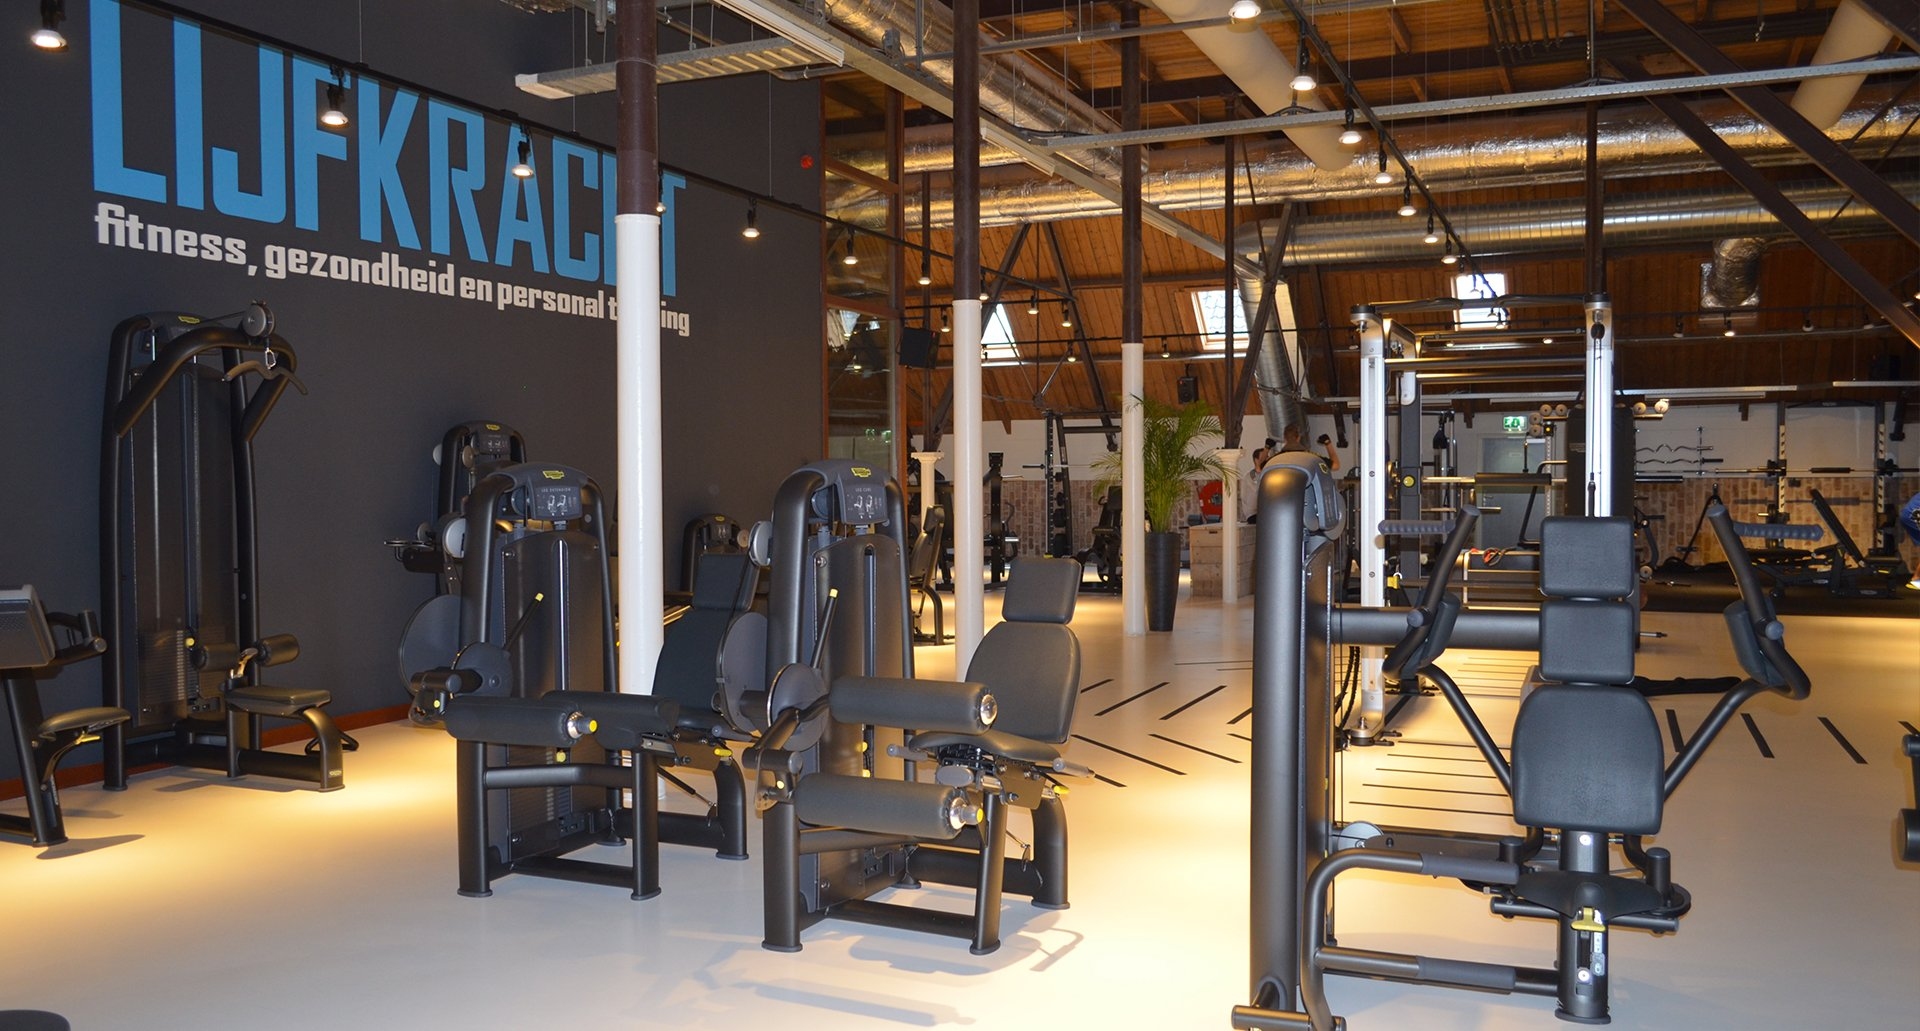 Lijfkracht Fitness Club